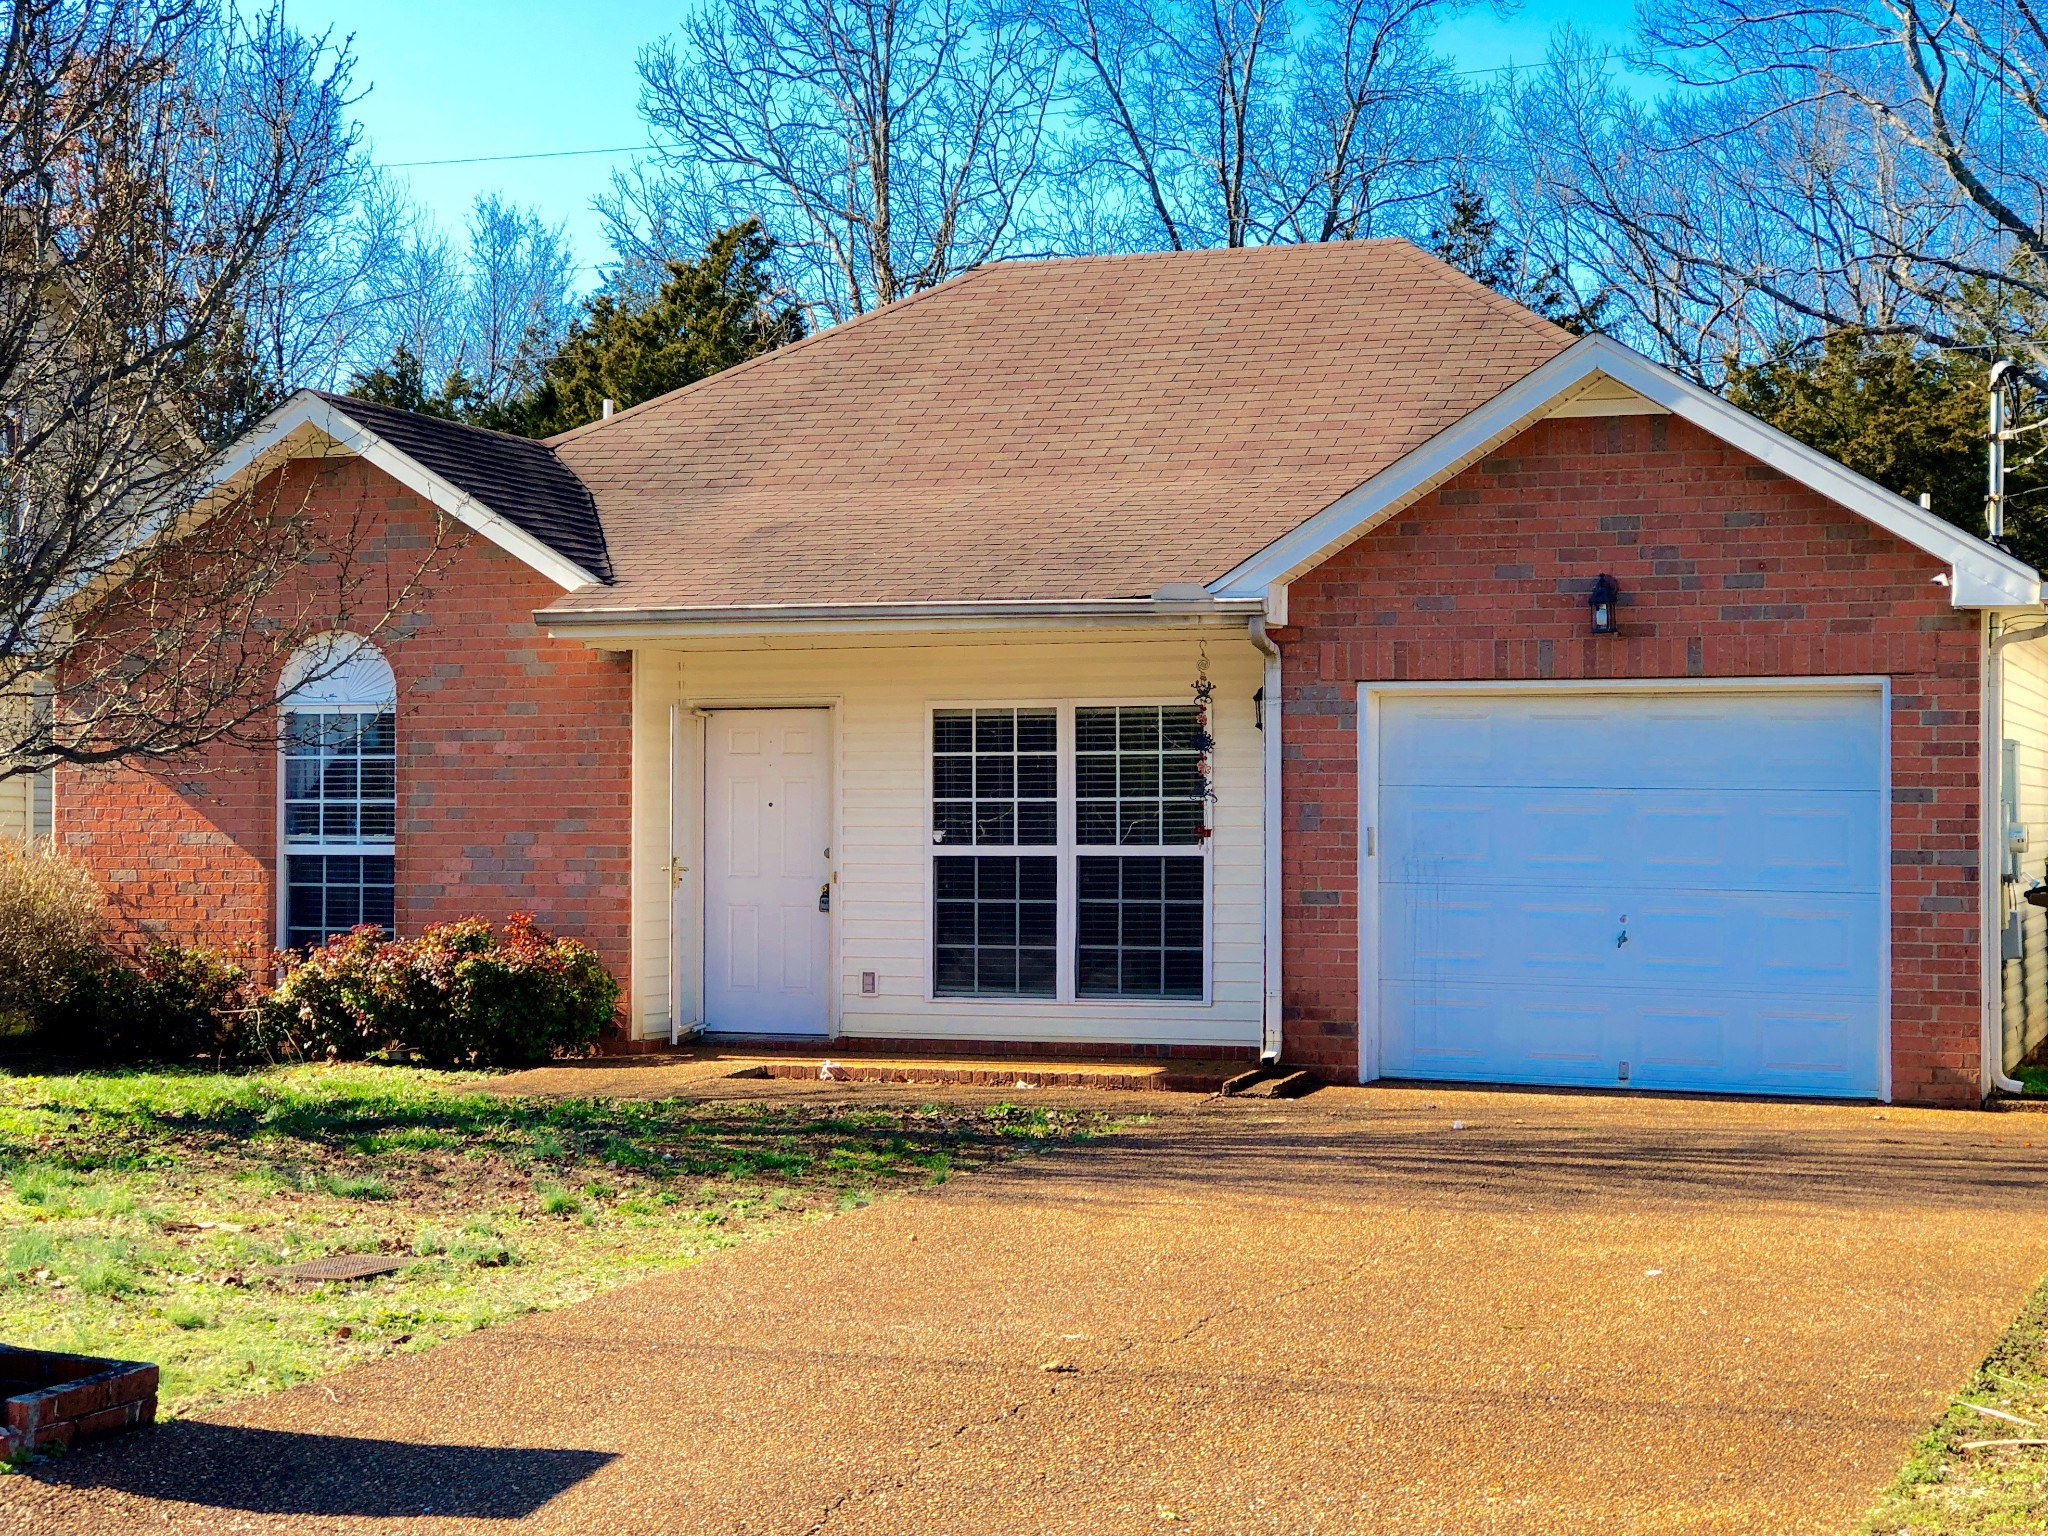 1948 Port James Cir, Nashville-Antioch in Davidson County County, TN 37013 Home for Sale